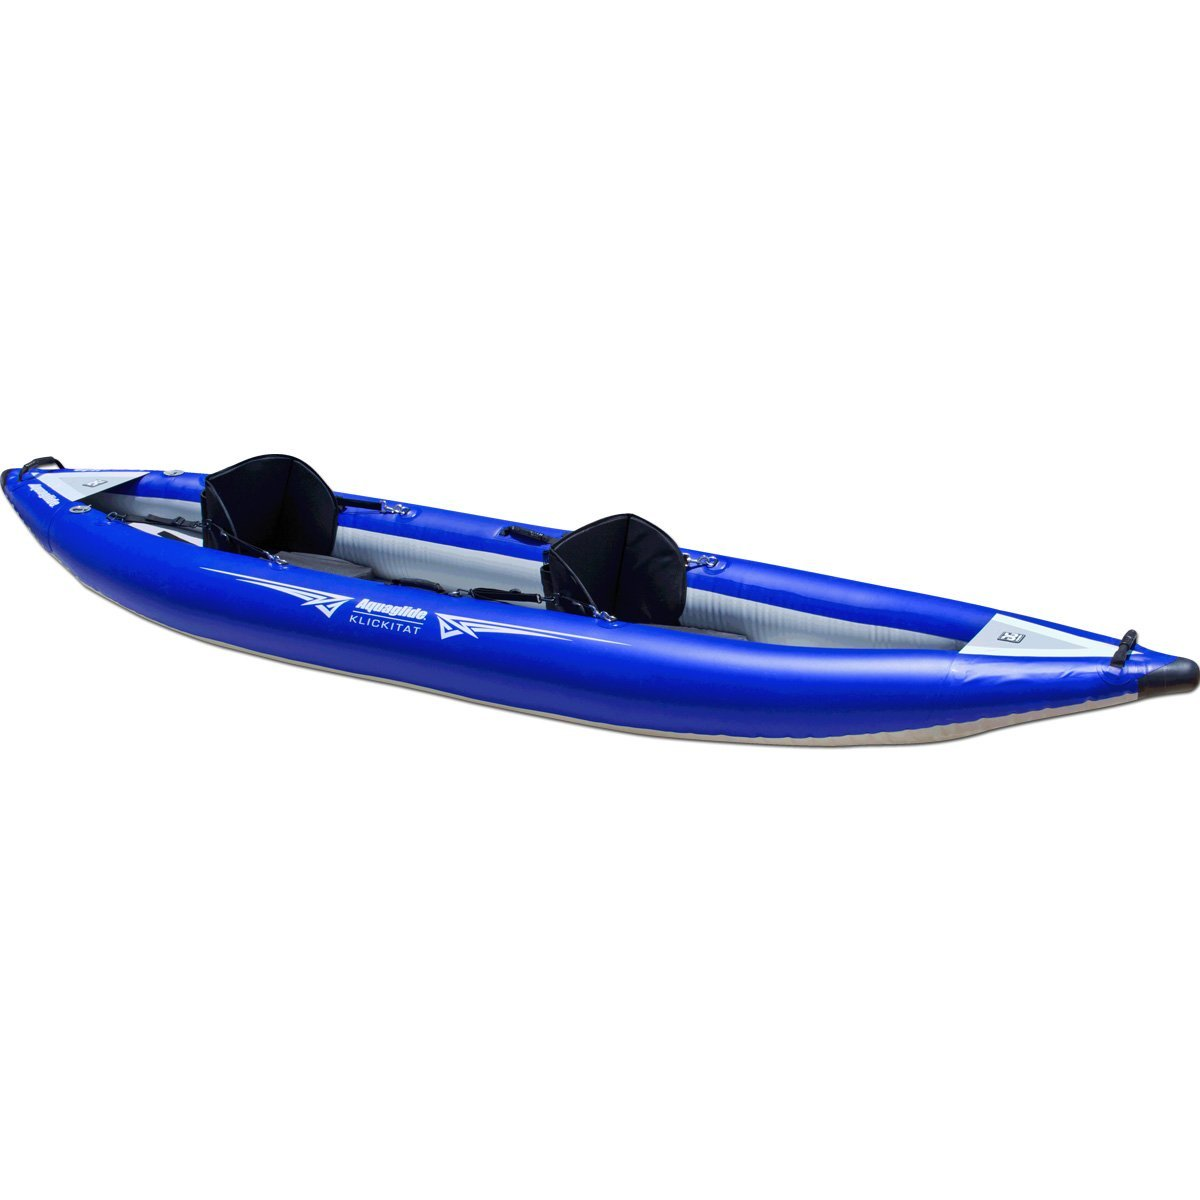 Aquaglide Klickitat Two HB Inflatable Kayak with River Running Outlines by